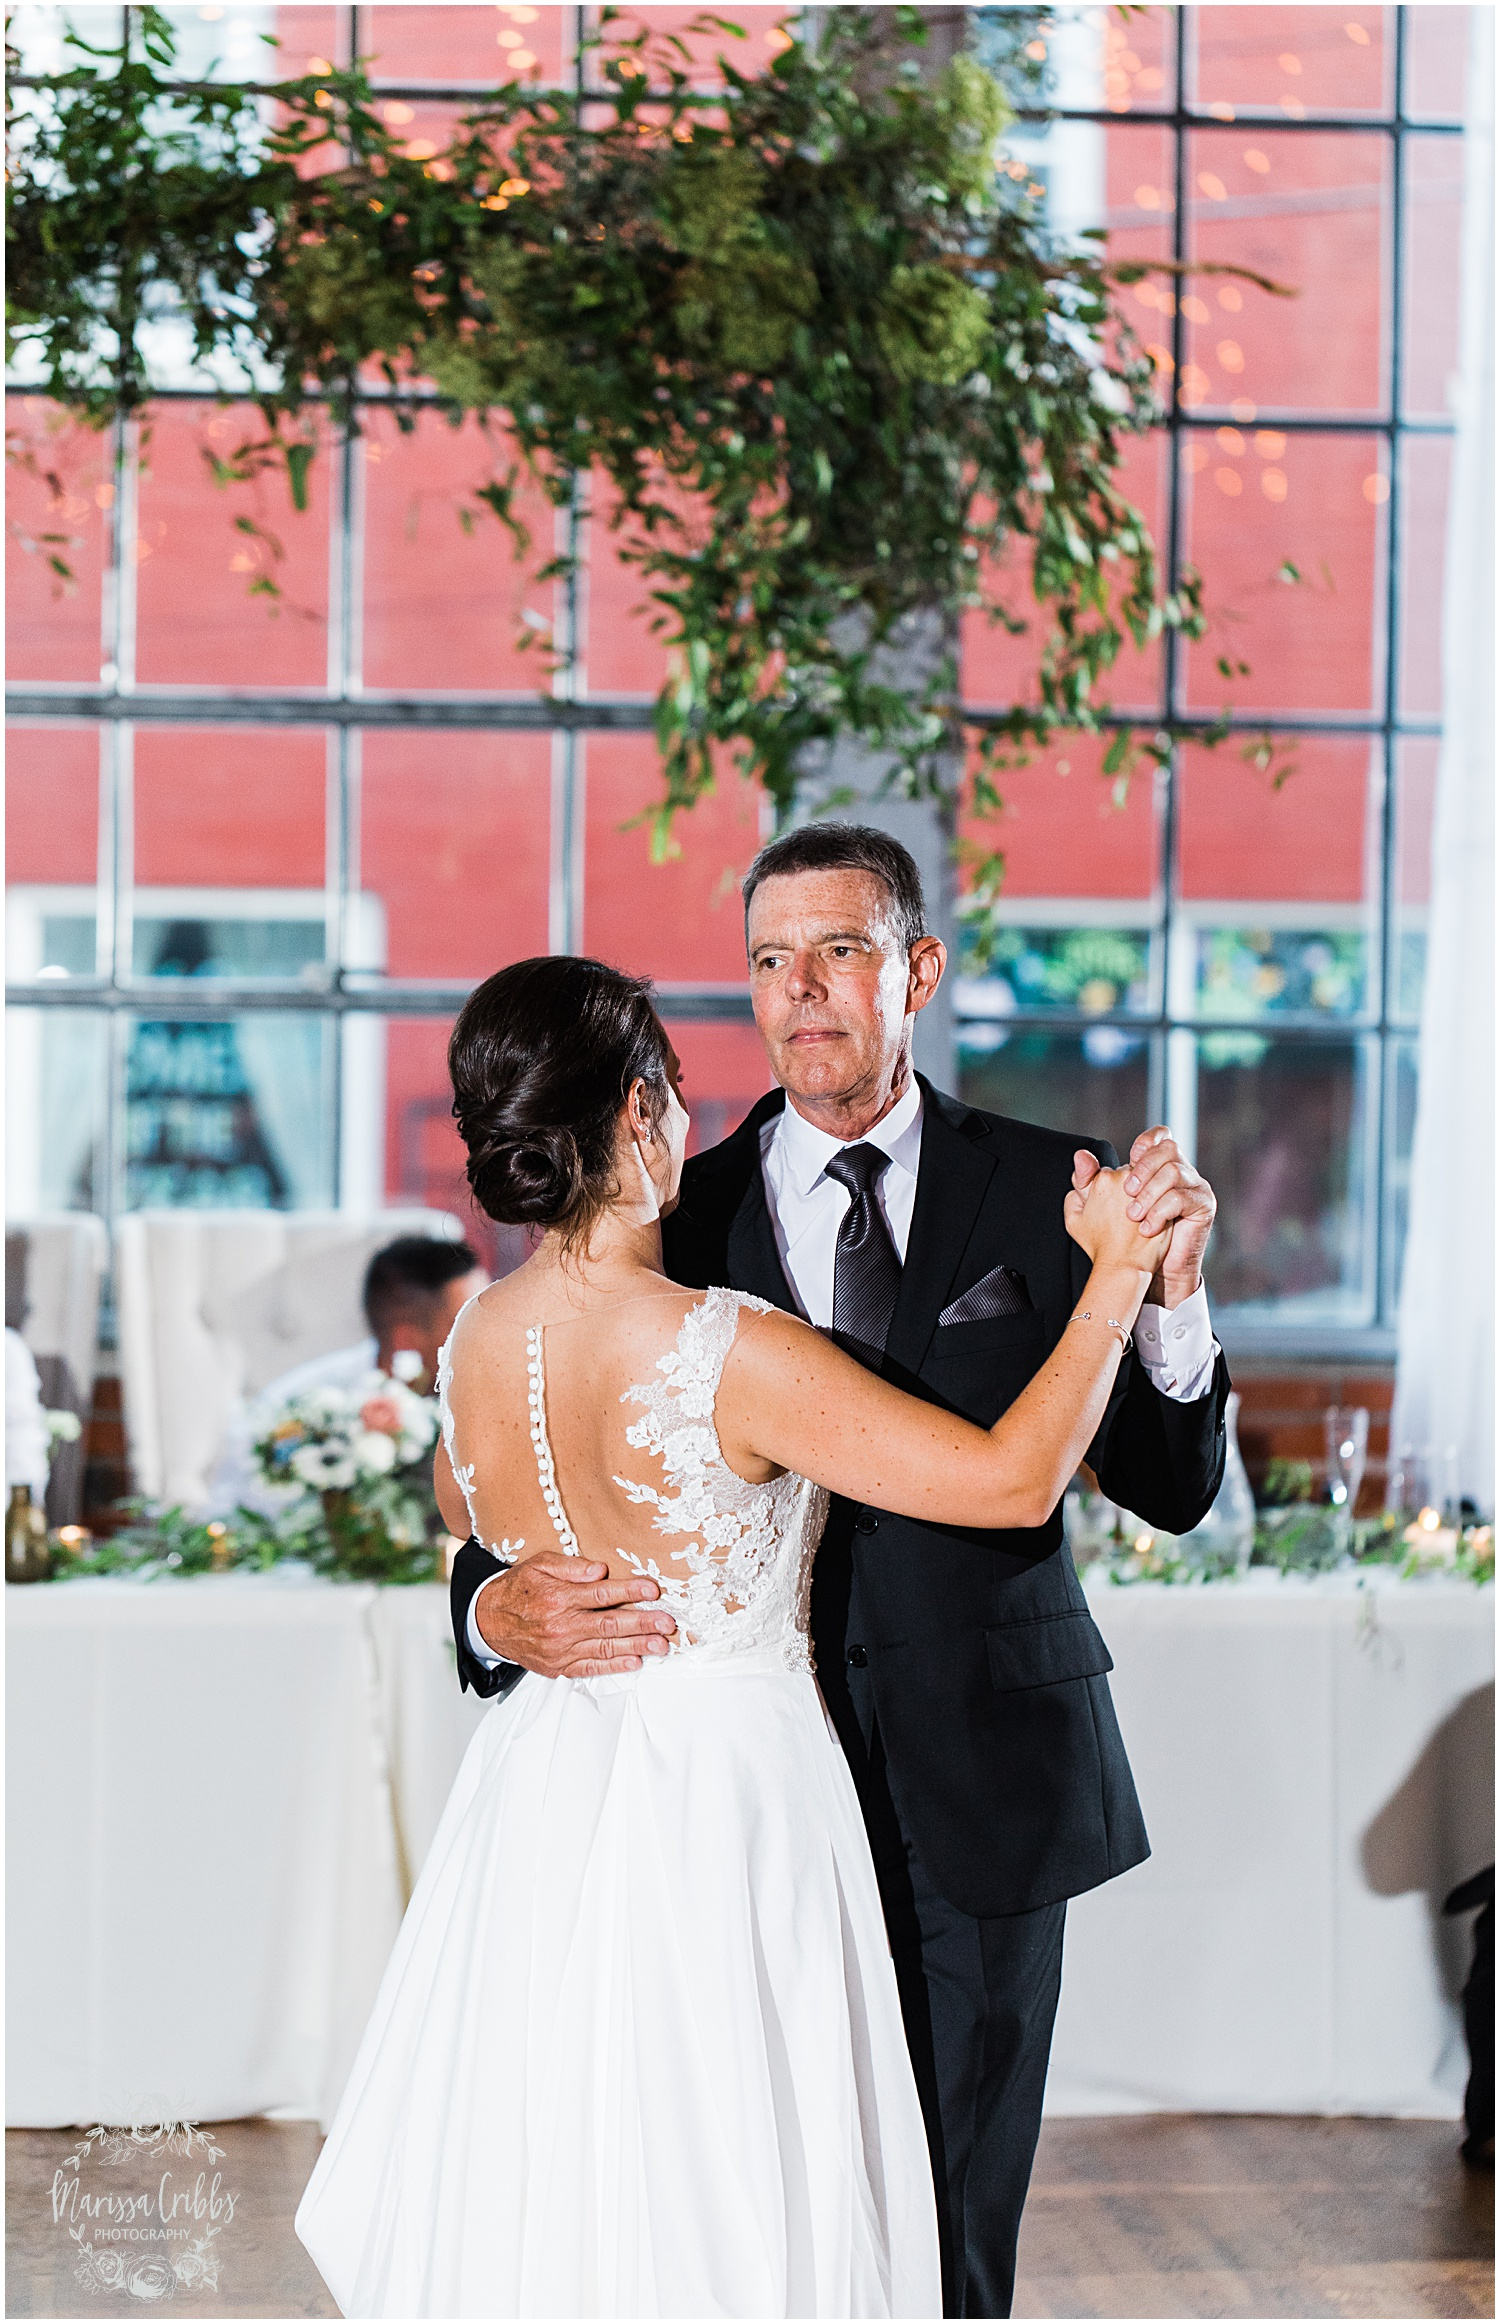 KELLY & MITCH MARRIED BLOG | MARISSA CRIBBS PHOTOGRAPHY | THE EVERLY EVENT SPACE_8916.jpg